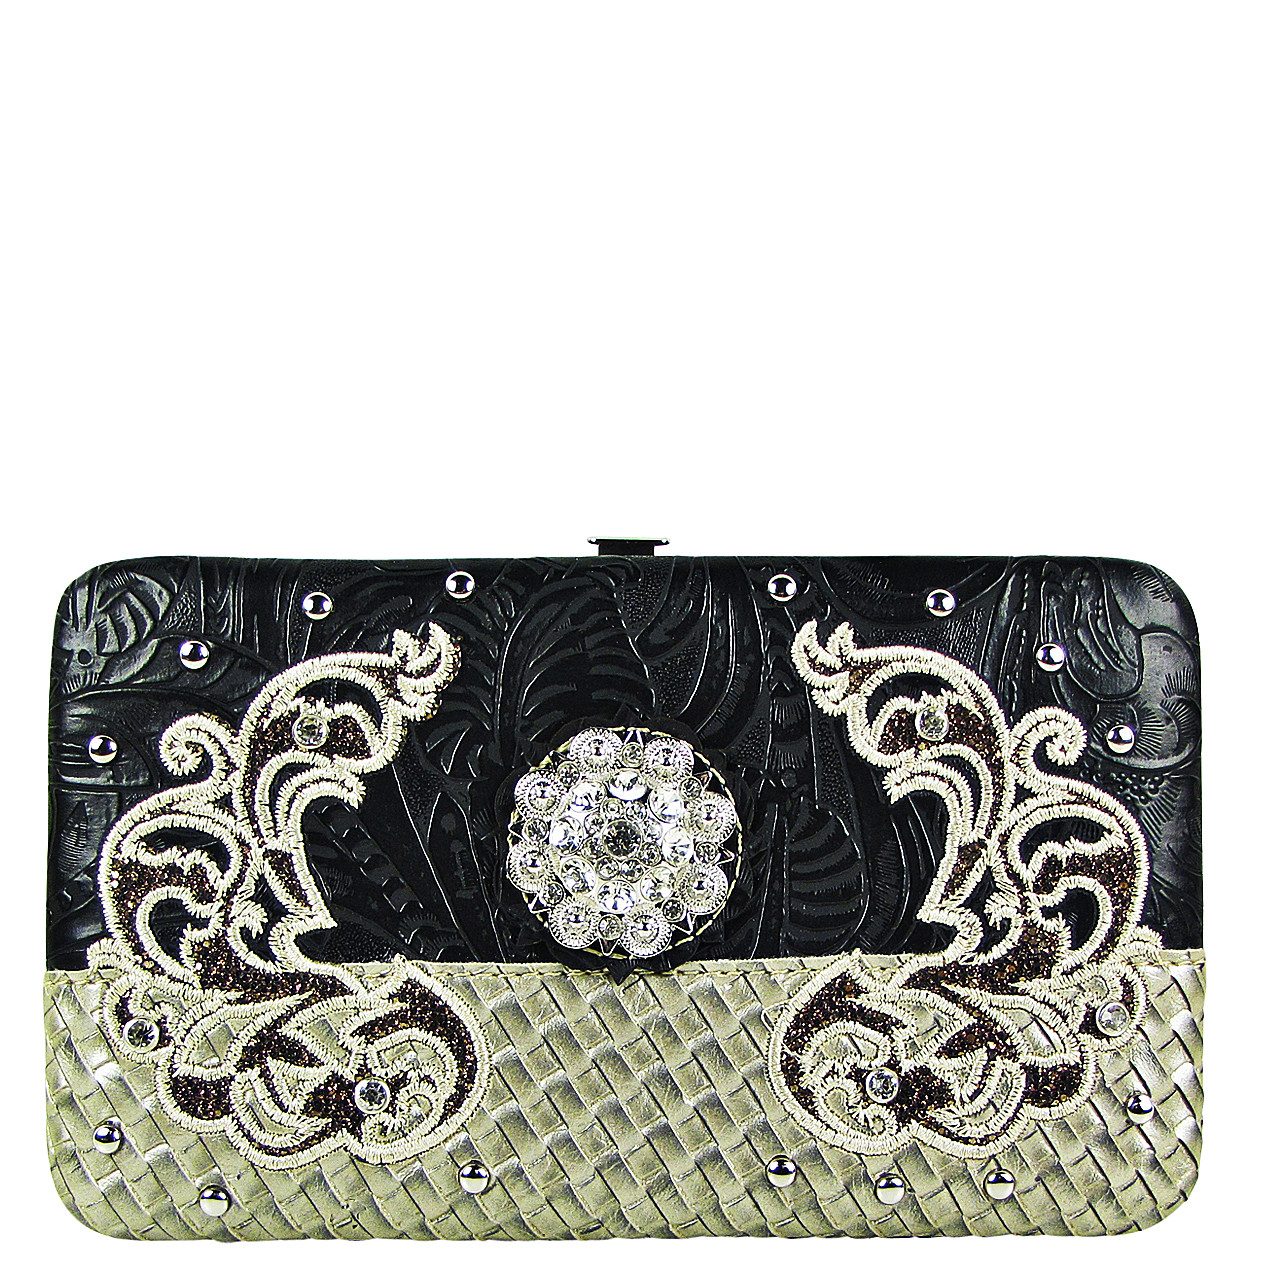 BLACK FLOWER RHINESTONE STITCHED DESIGN LOOK FLAT THICK WALLET FW2-12125BLK